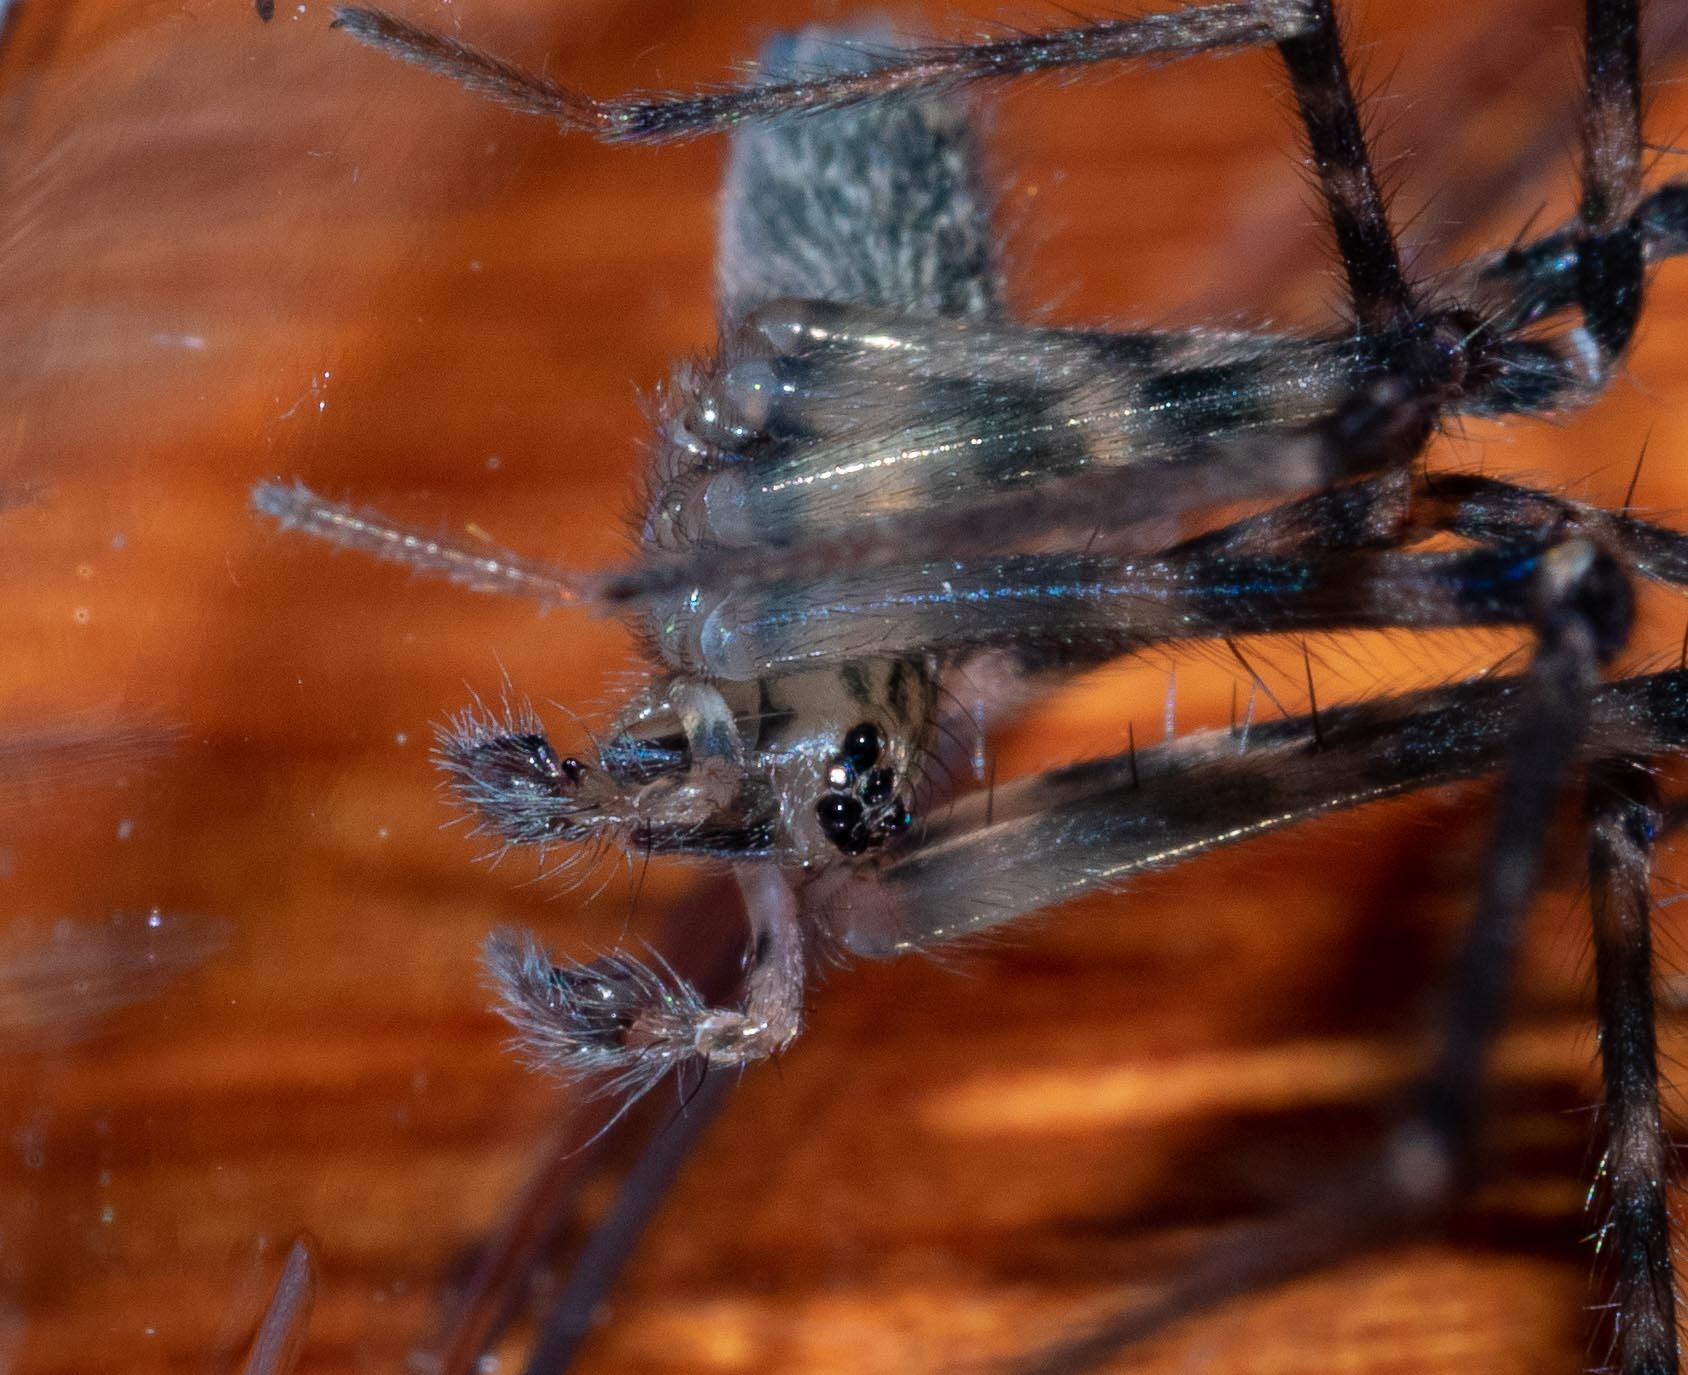 The elaborate ends of the pedipalps are a give away.  This spider is definitely a male!  Also note the many sensory hairs on the pedipalps. He has now been returned to his home under a fallen log. Family: Stiphidiidae